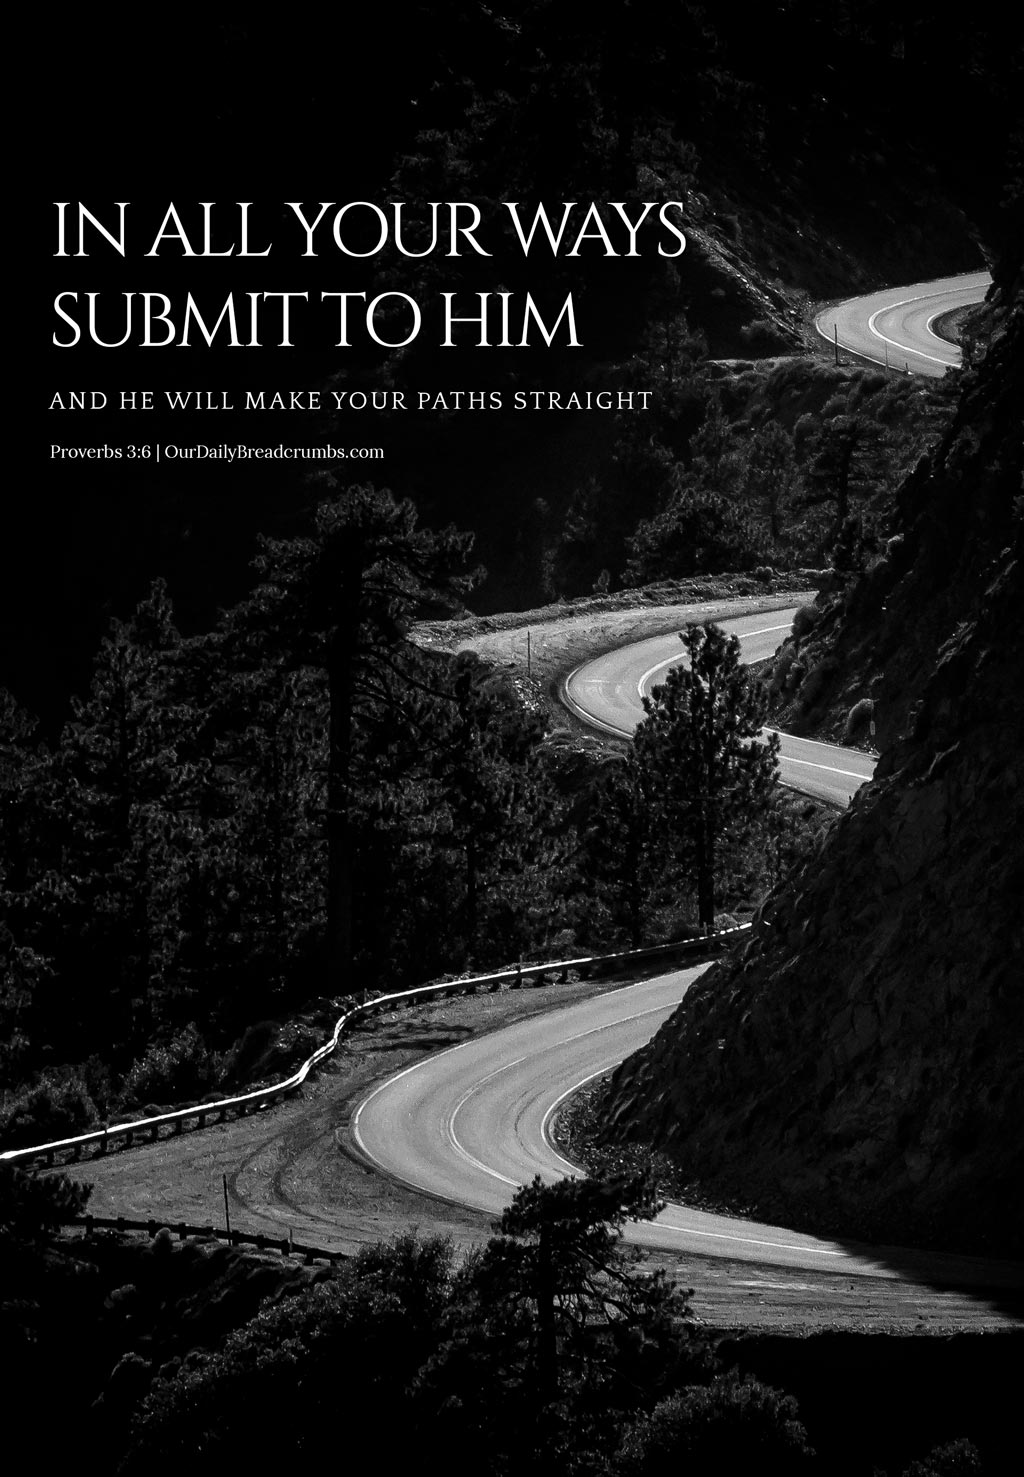 In all your ways submit to him, and he will make your paths straight Proverbs 3-6